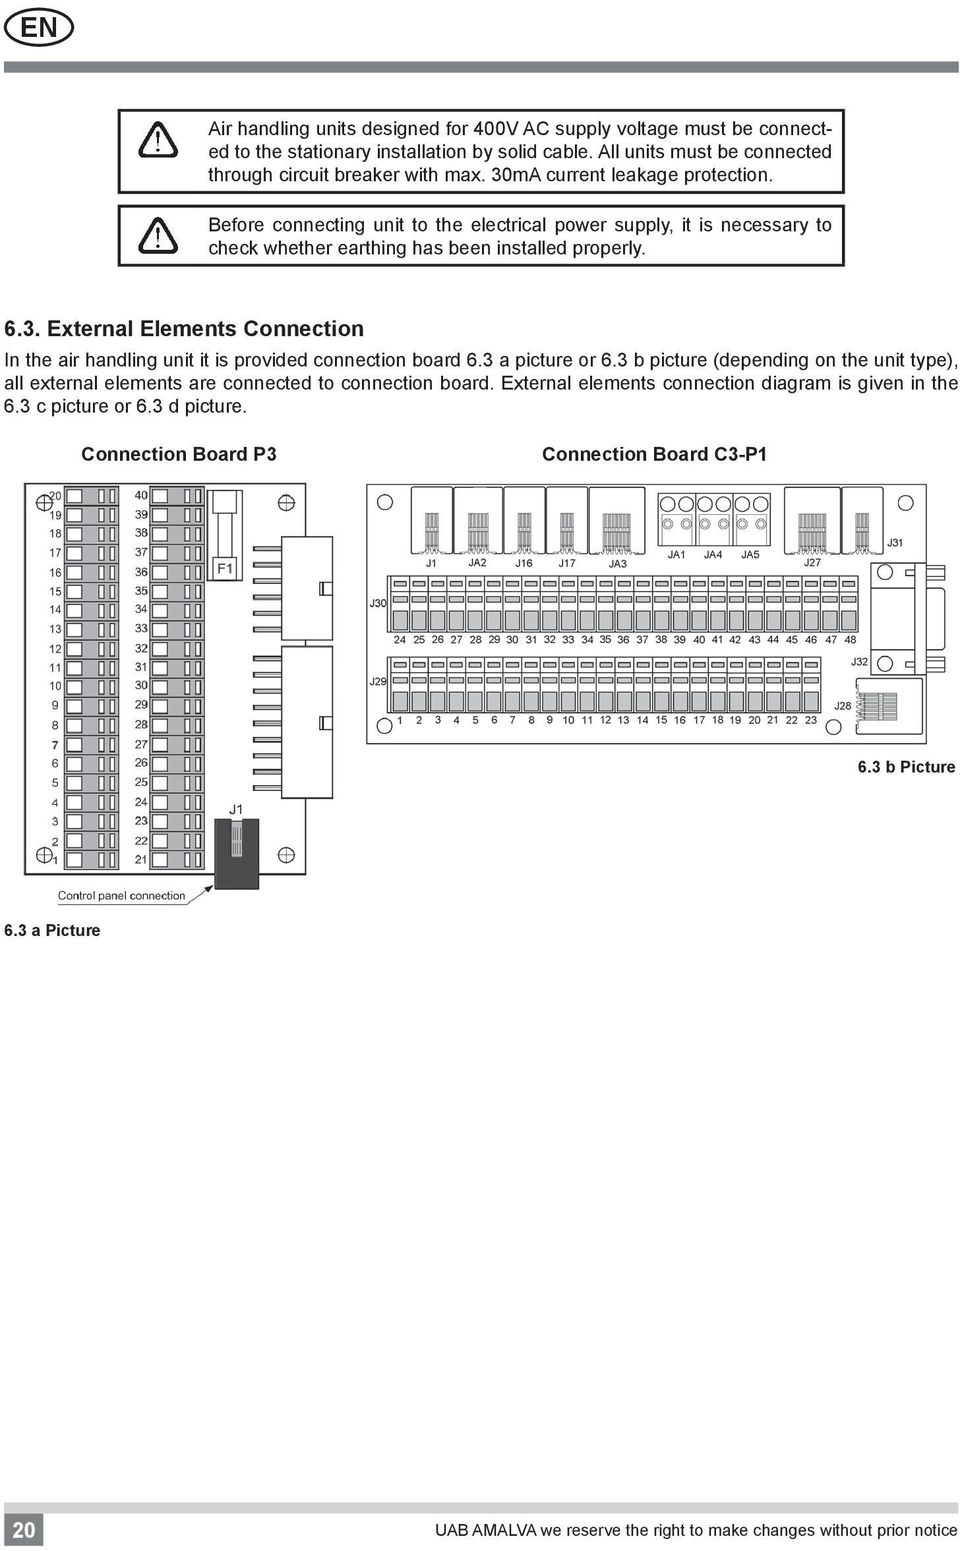 3 a picture or 6.3 b picture (depending on the unit type), all external elements are connected to connection board. External elements connection diagram is given in the 6.3 c picture or 6.